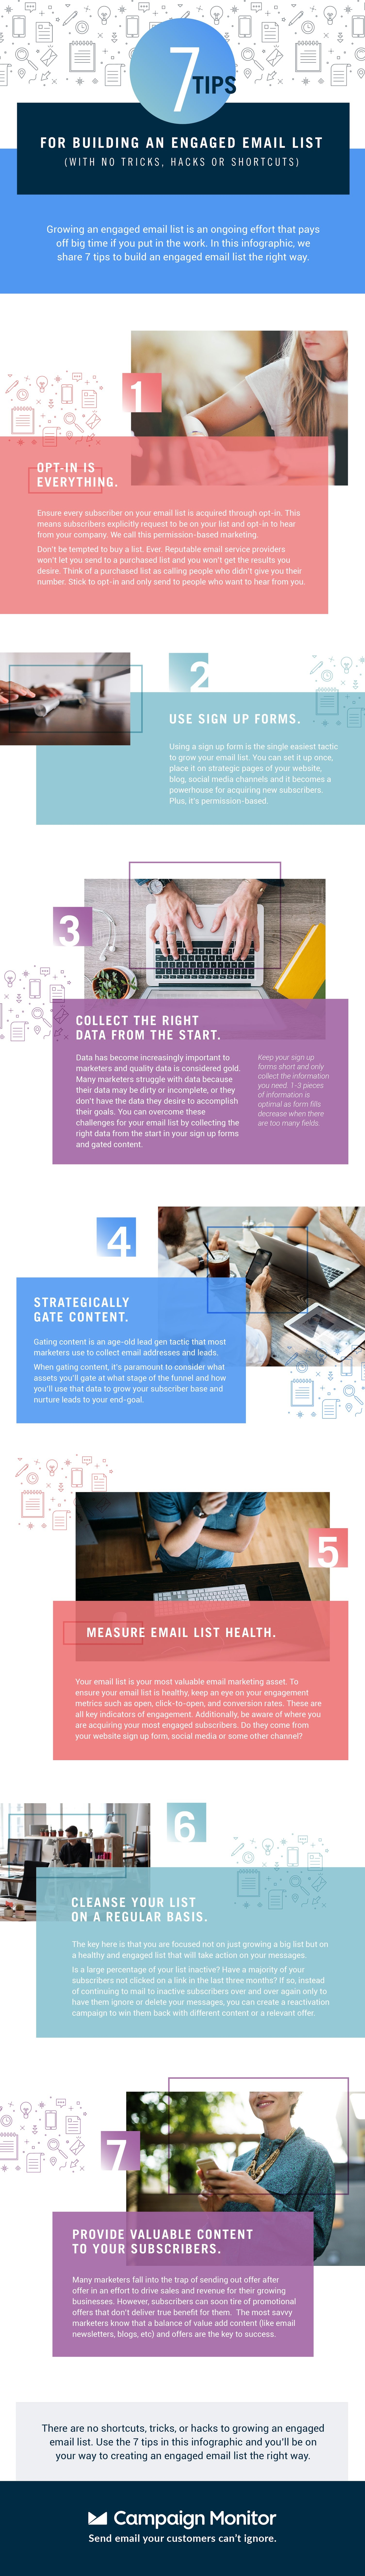 7 Tips for Building an Engaged Email List [Infographic]